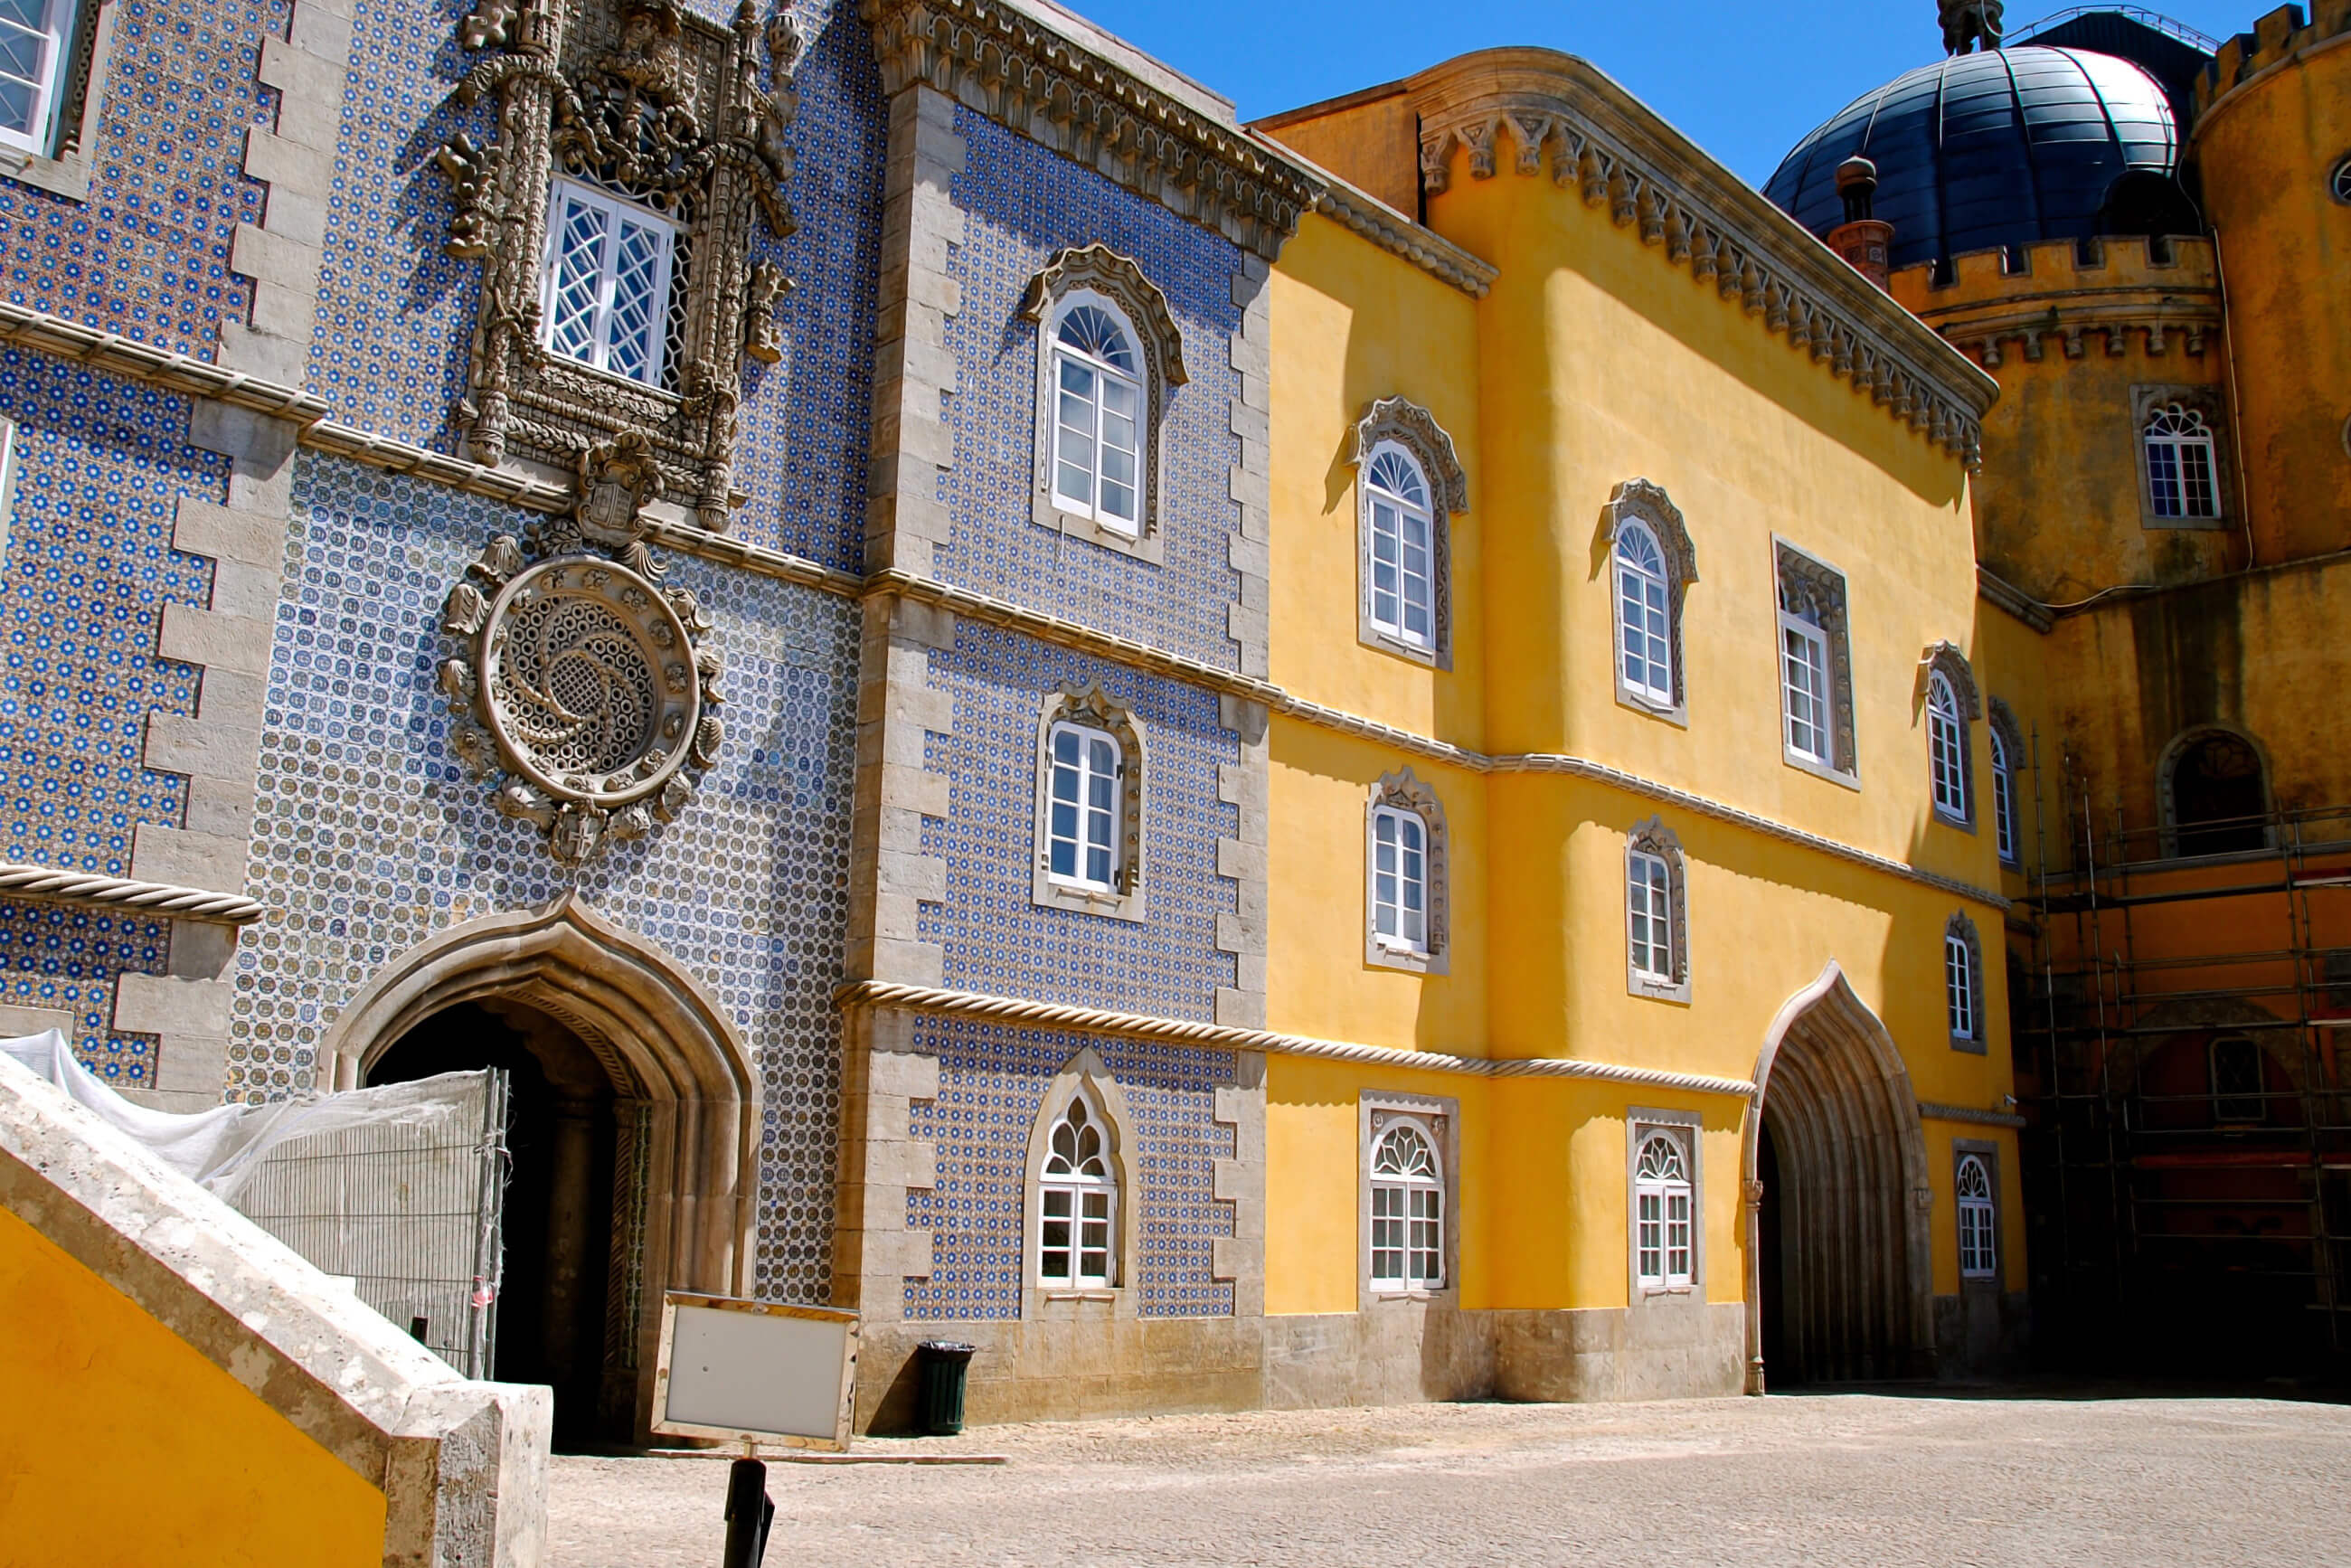 https://bubo.sk/uploads/galleries/16329/pxb_portugalsko_sintra-1576508.jpg